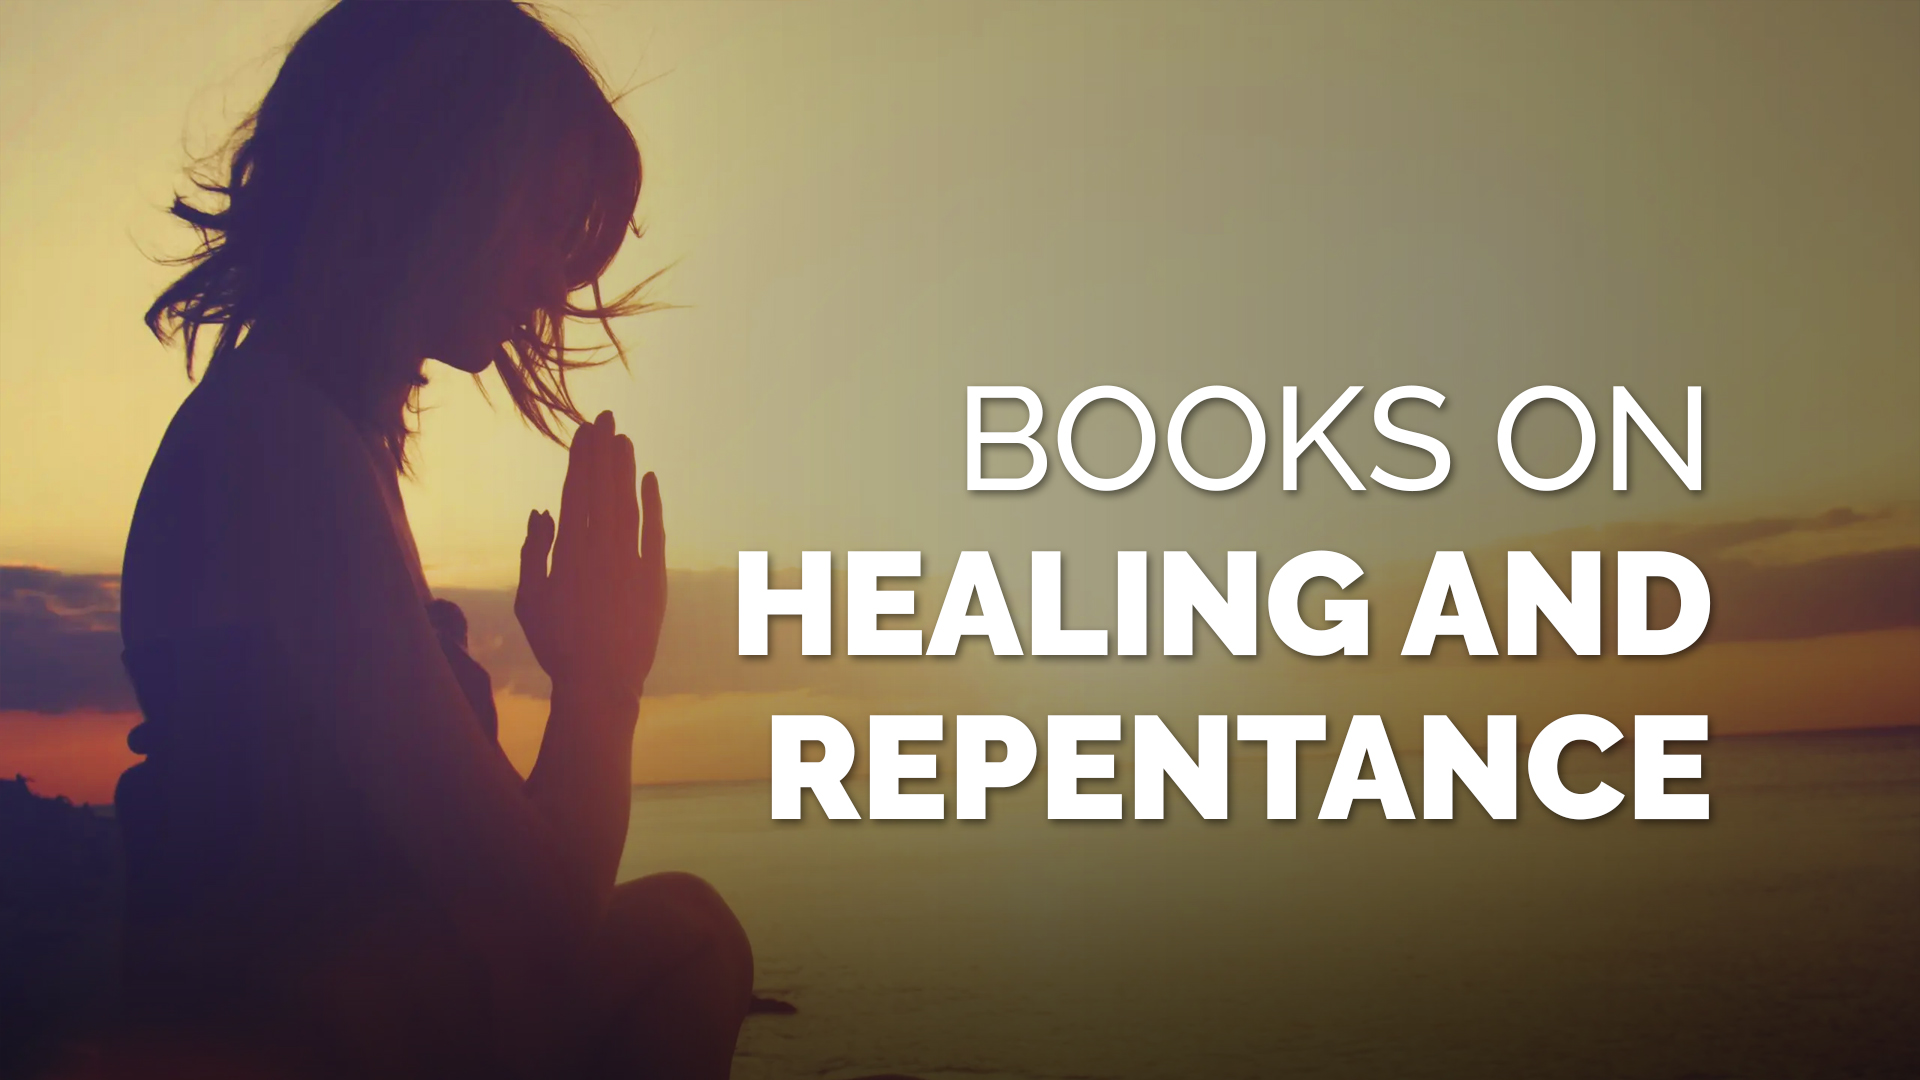 Books on Healing and Repentance banner